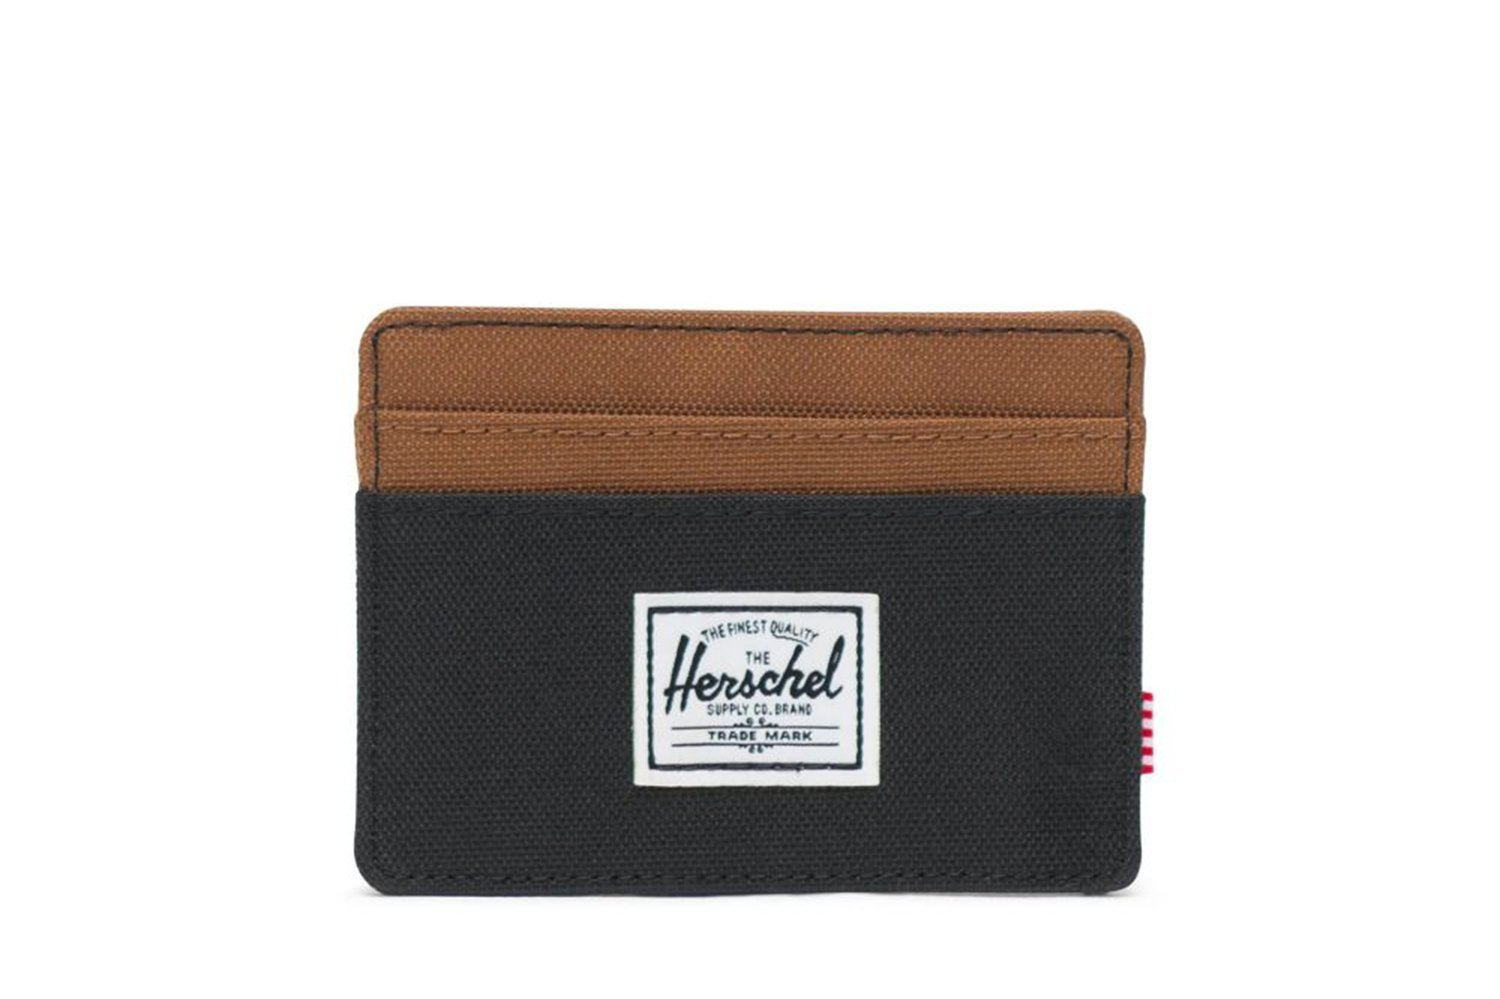 CHARLIE+ 600D - 10360-02462 ACCESSORIES HERSCHEL